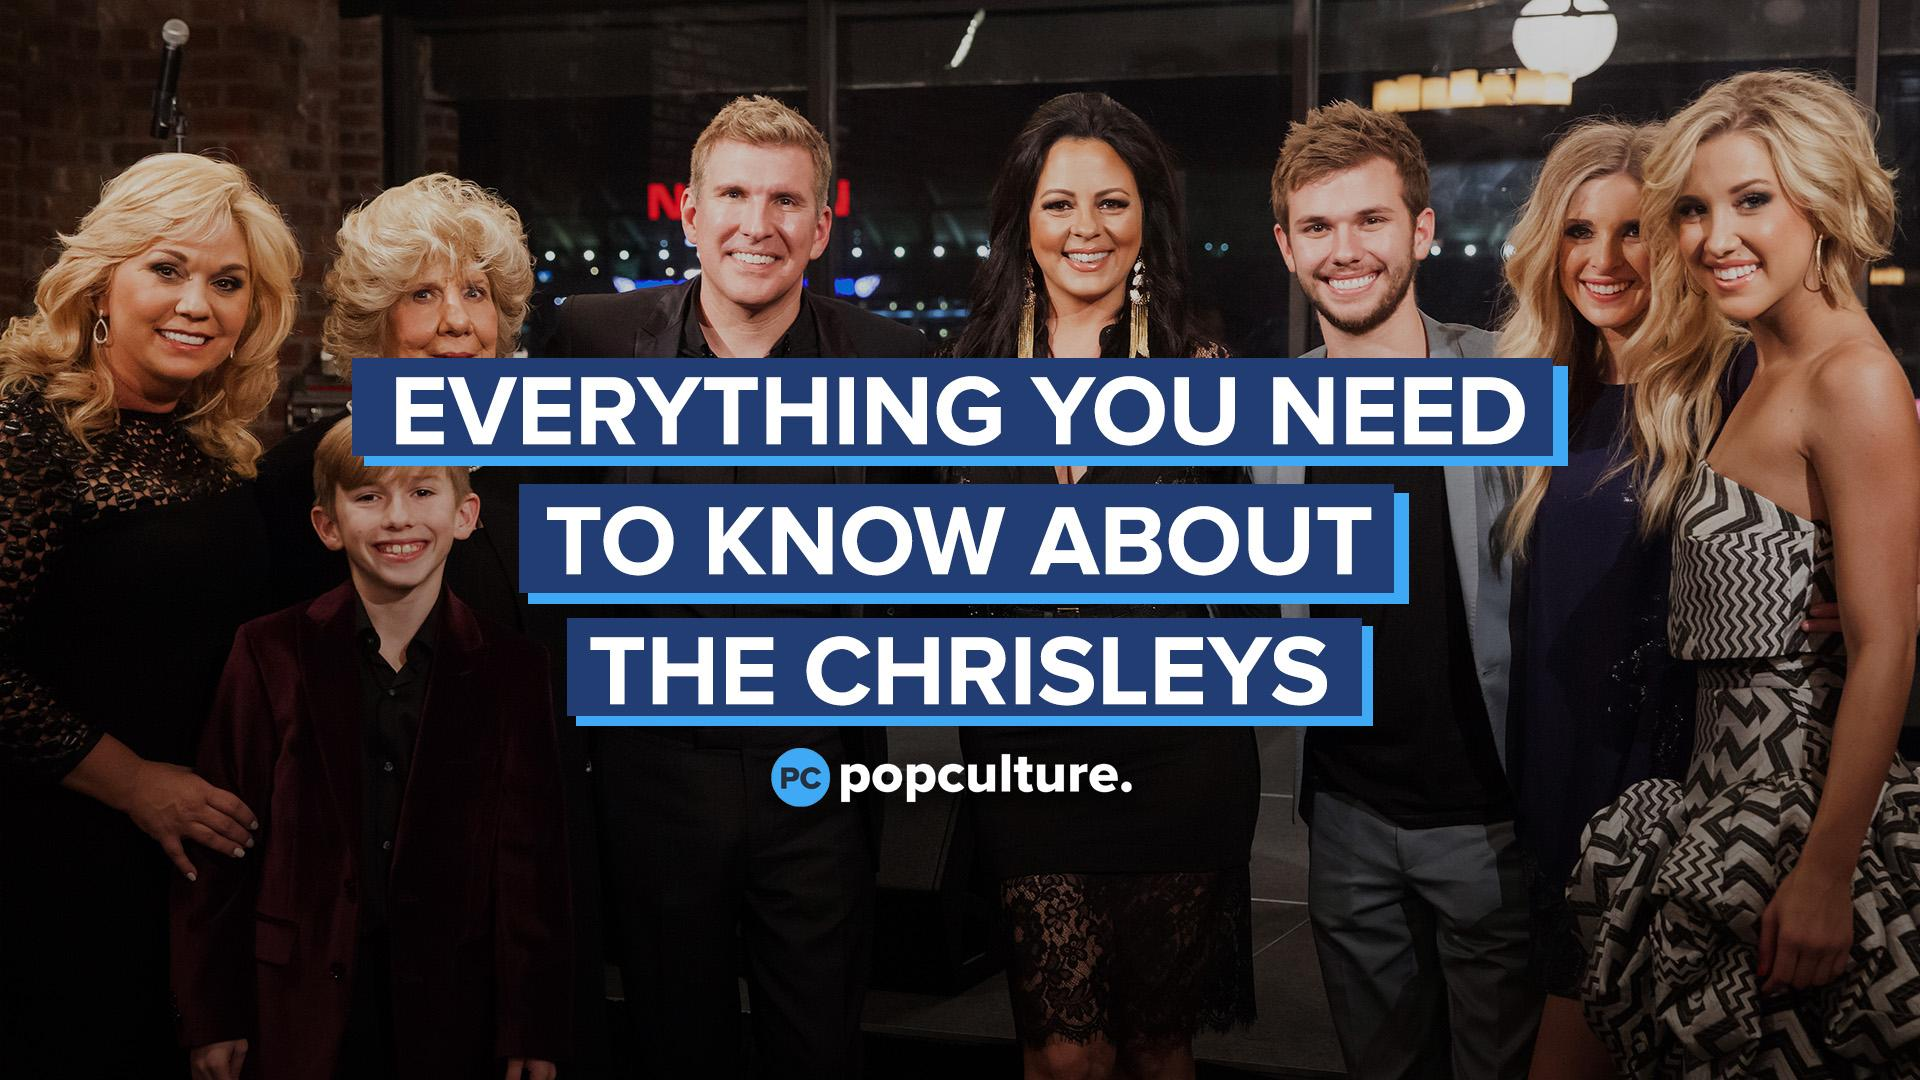 Everything You Need to Know About the Chrisley's screen capture